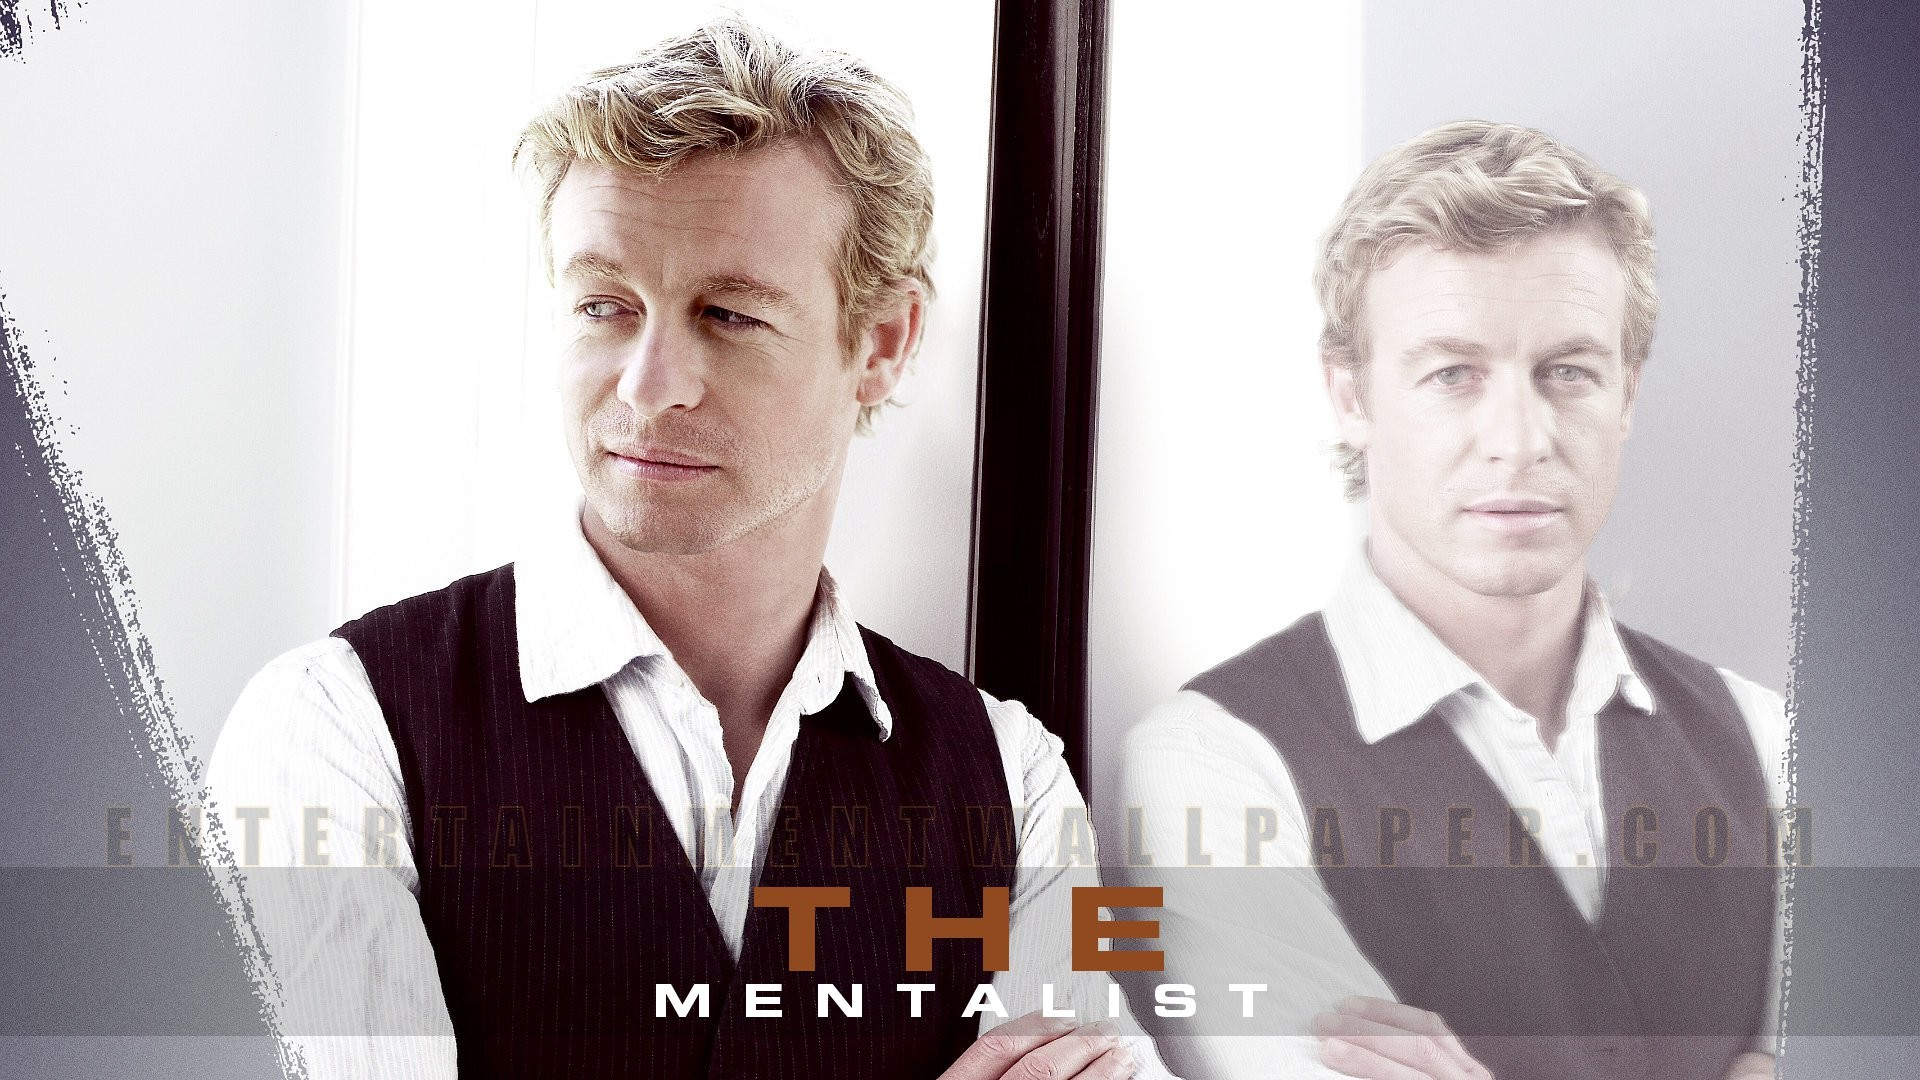 1920x1080 The Mentalist Wallpaper - Original size, download now.